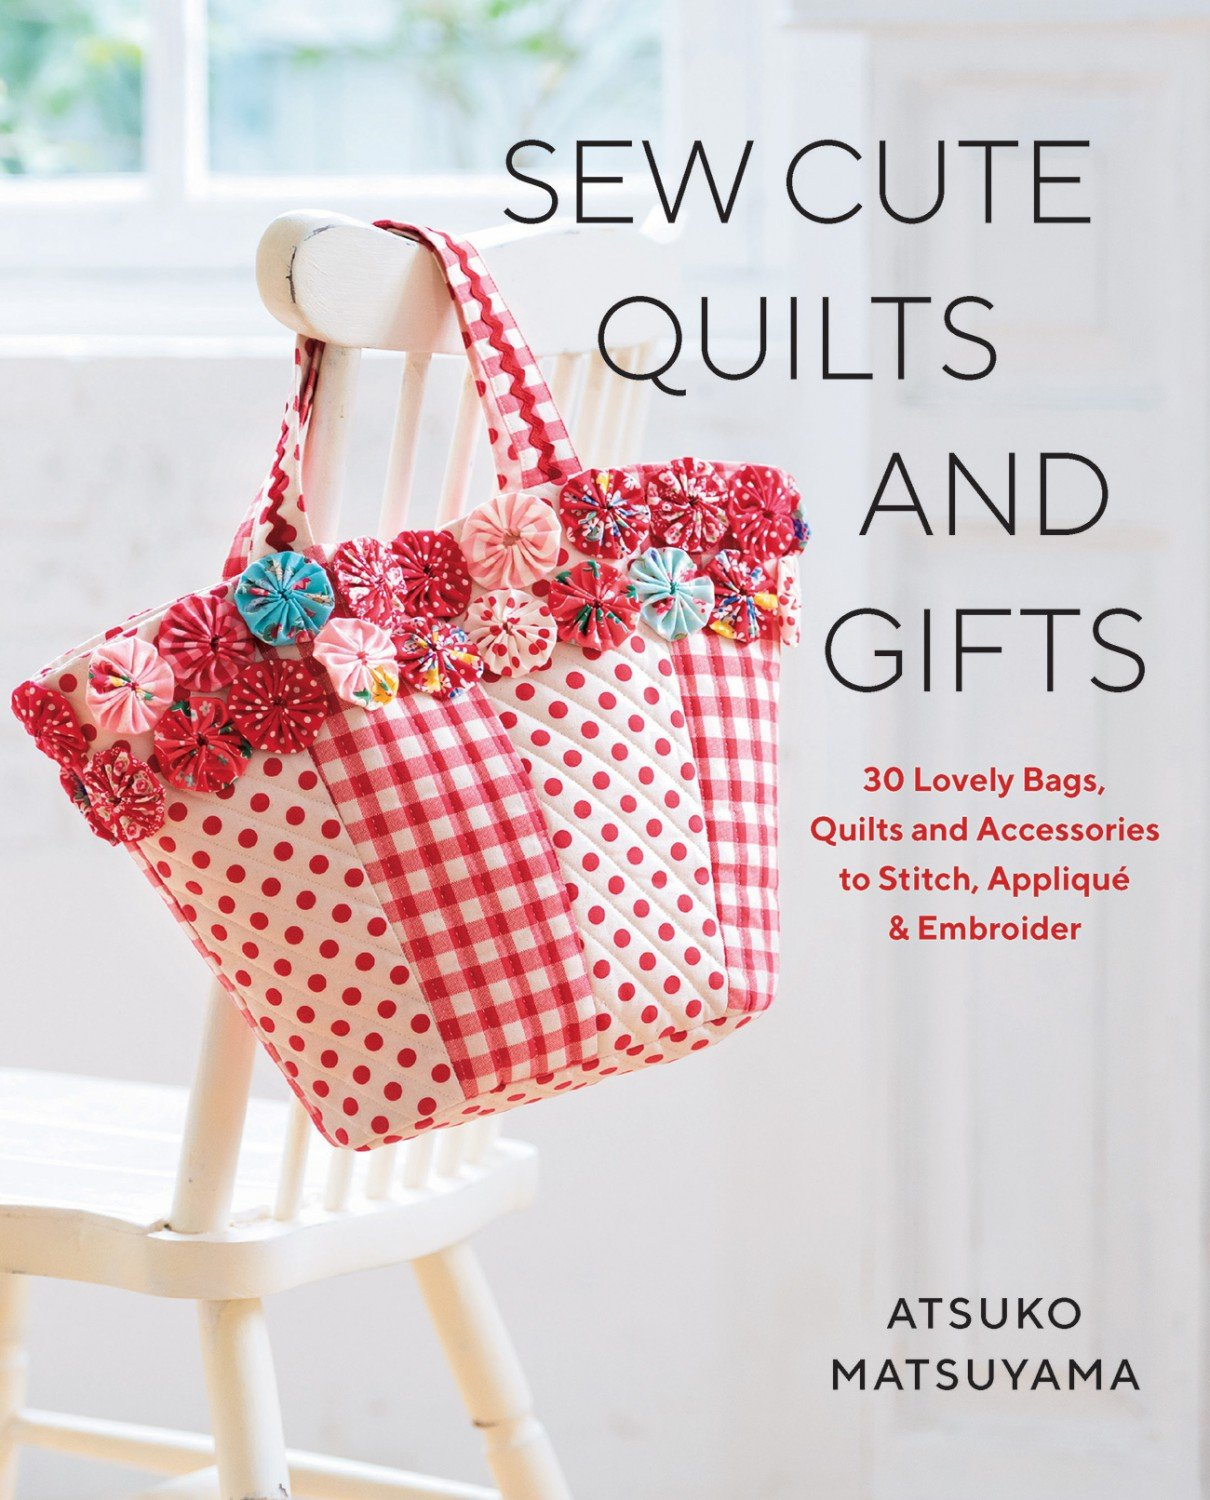 Sew Cute Quilts and Gifts